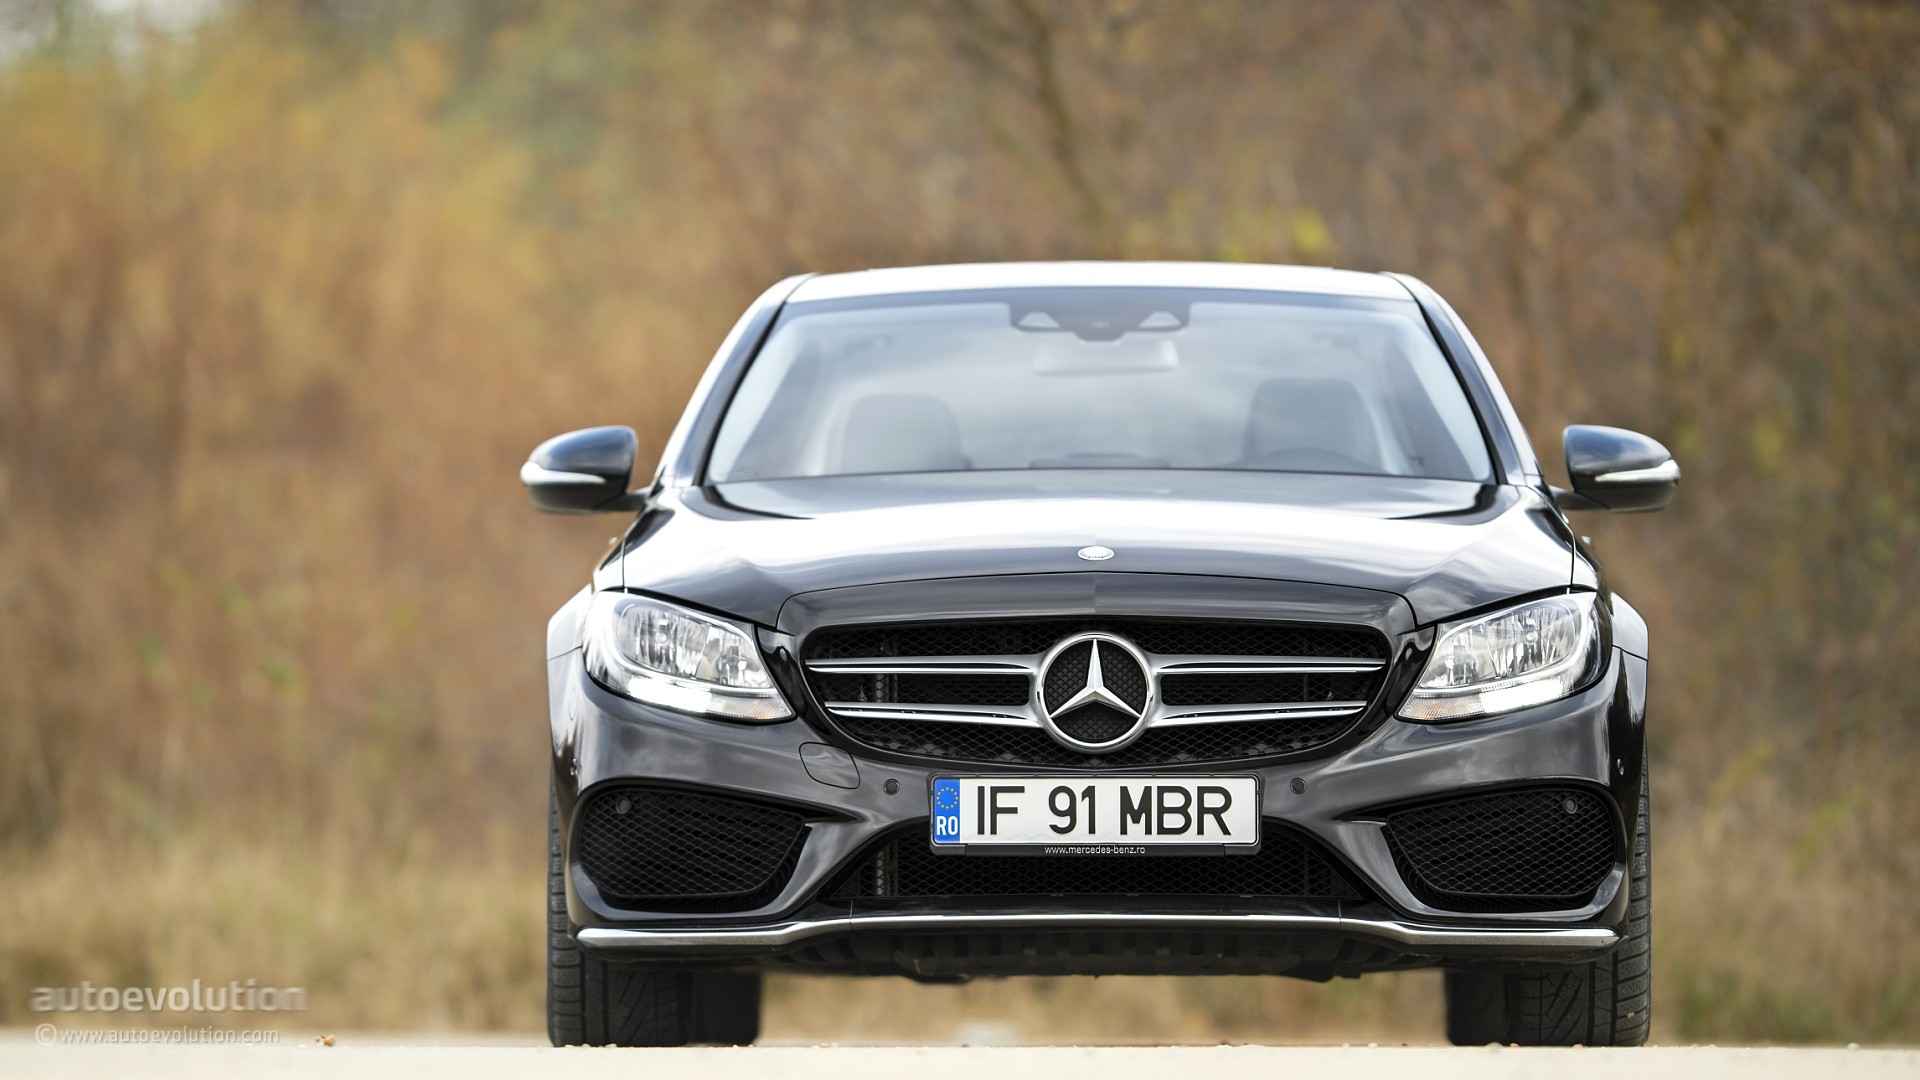 2015 mercedes benz c class hd wallpapers they call it for Call mercedes benz